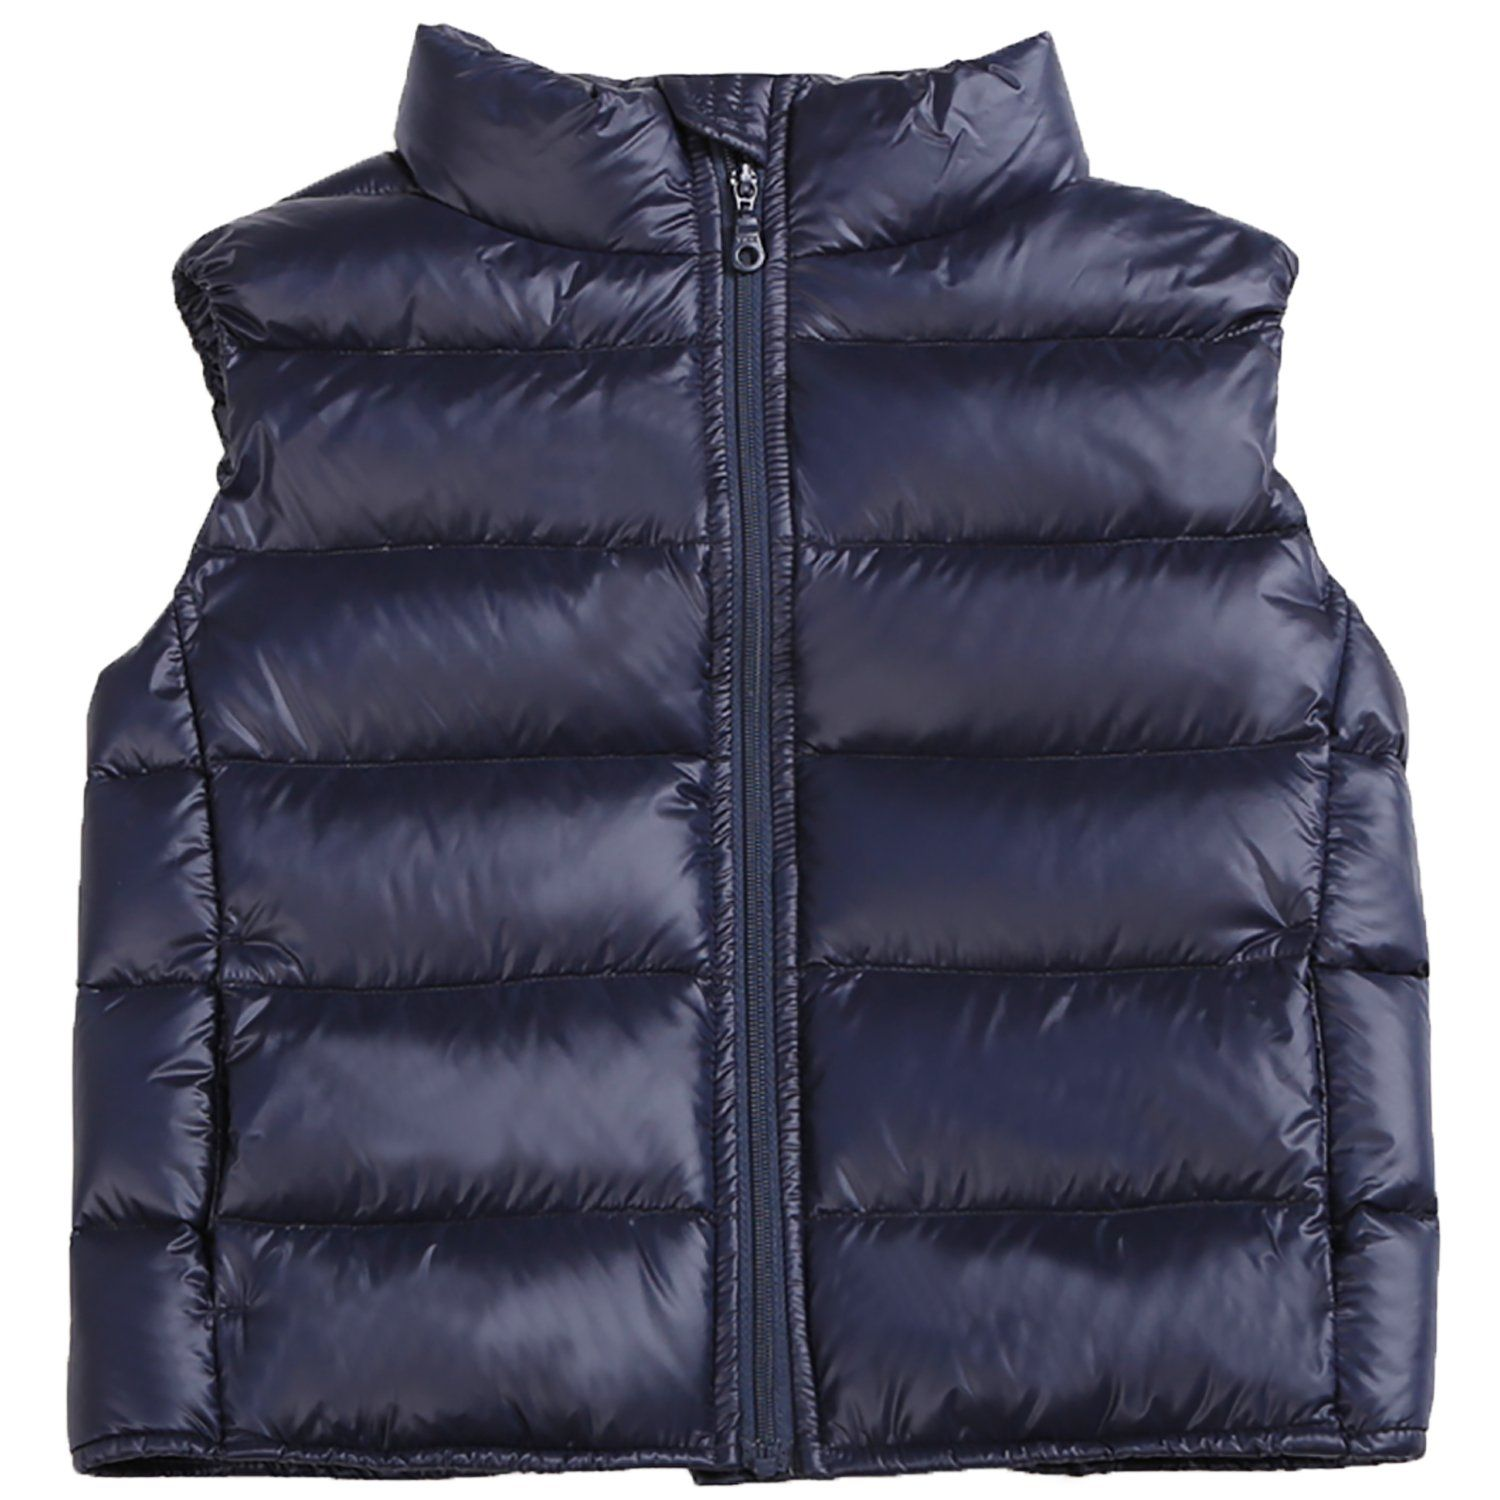 Blue Happy Cherry Kids Winter Warm Puffer Packable Down Jacket Coat for Boys and Girls